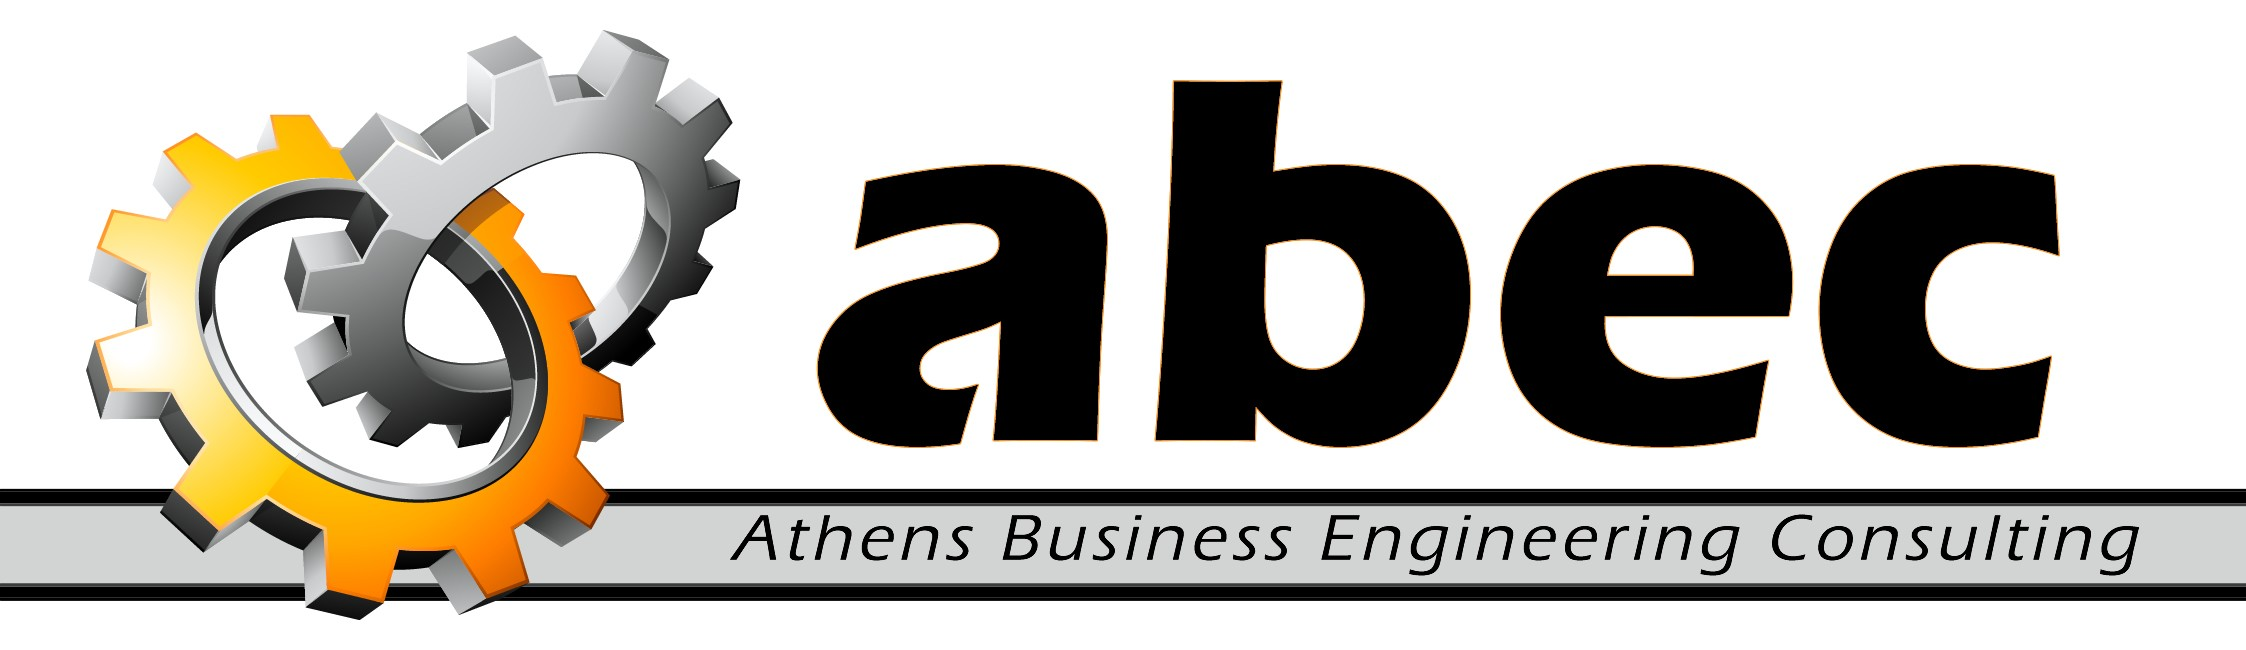 Athens Business Engineering Consulting   LinkedIn